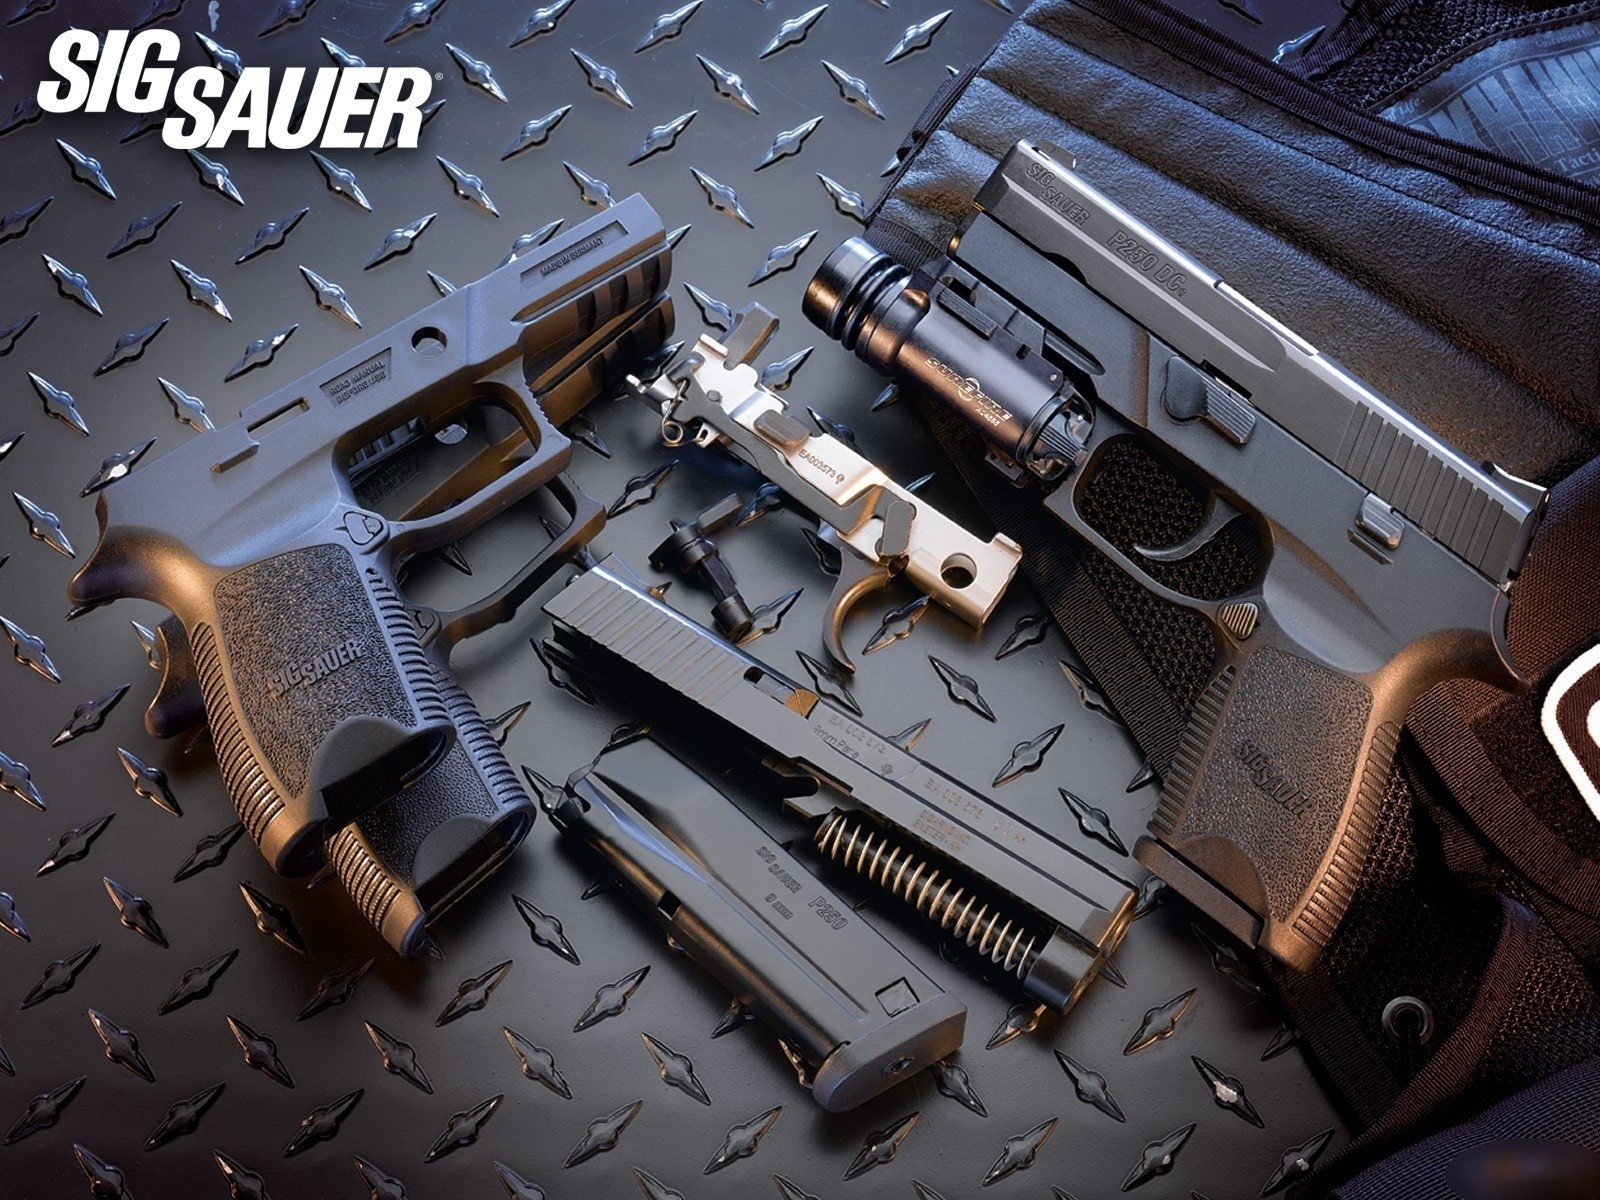 Sig Sauer Pistol Wallpaper And Background Image